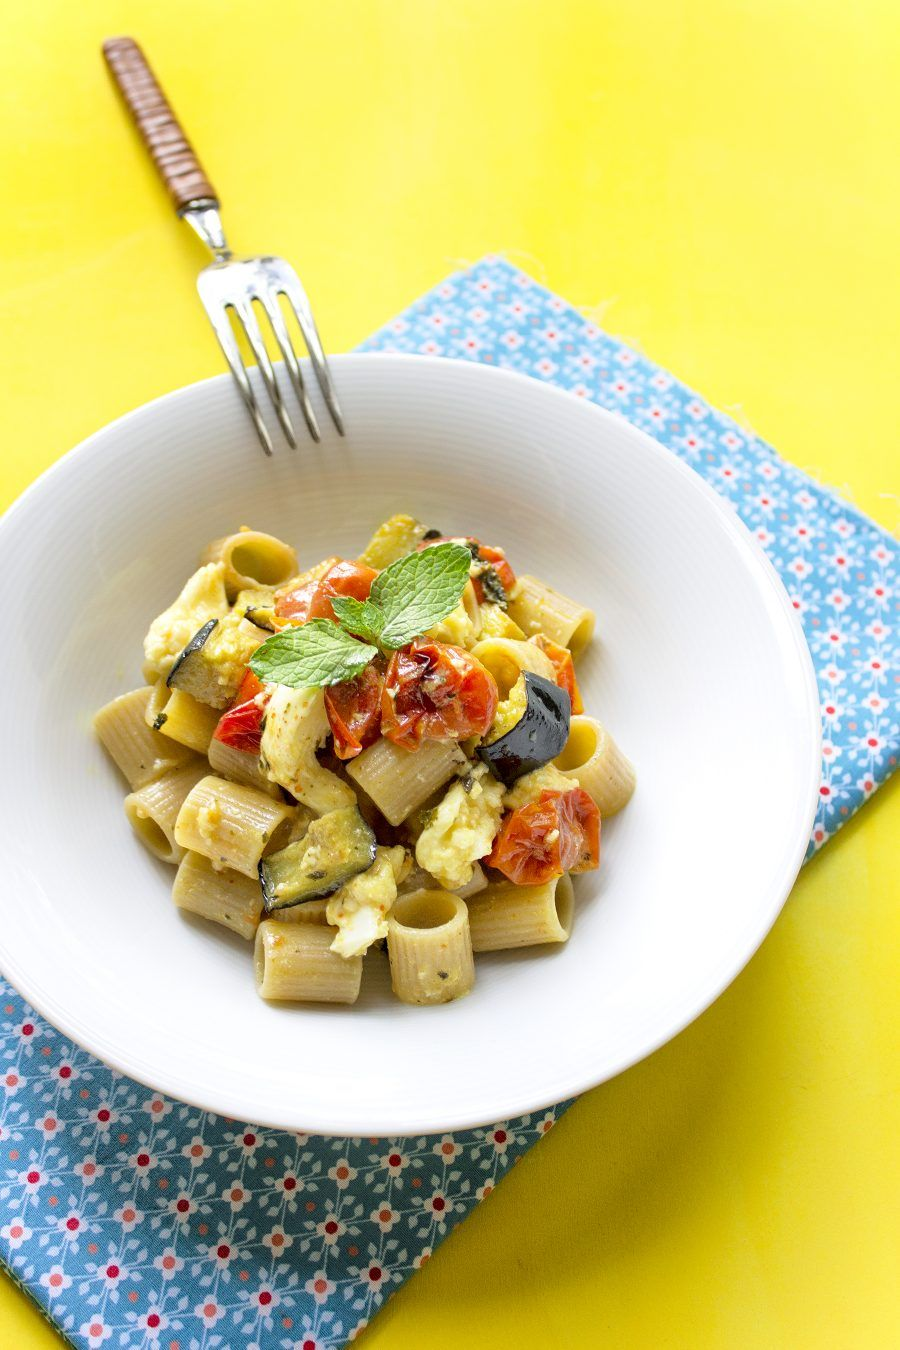 insalata-di-pasta-melanzane-4-contemporaneo-food